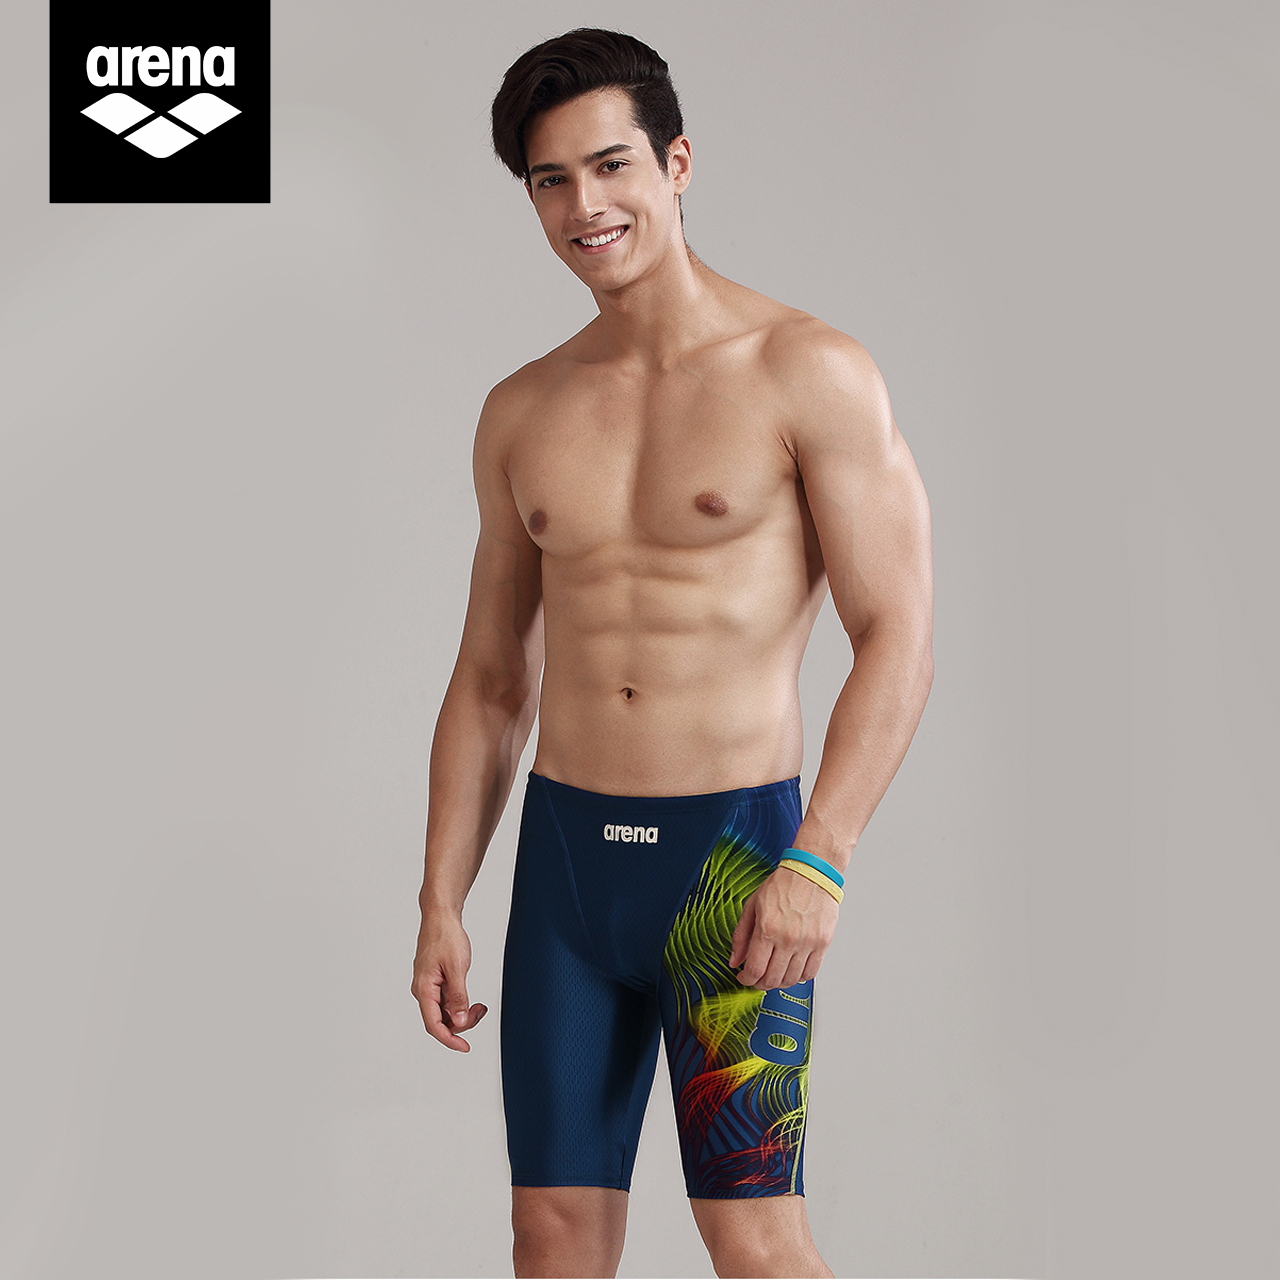 Arena arena men's 5-point swimming trunks and knee length professional training swimsuit high elasticity, quick drying and chlorine resistant swimming trunks